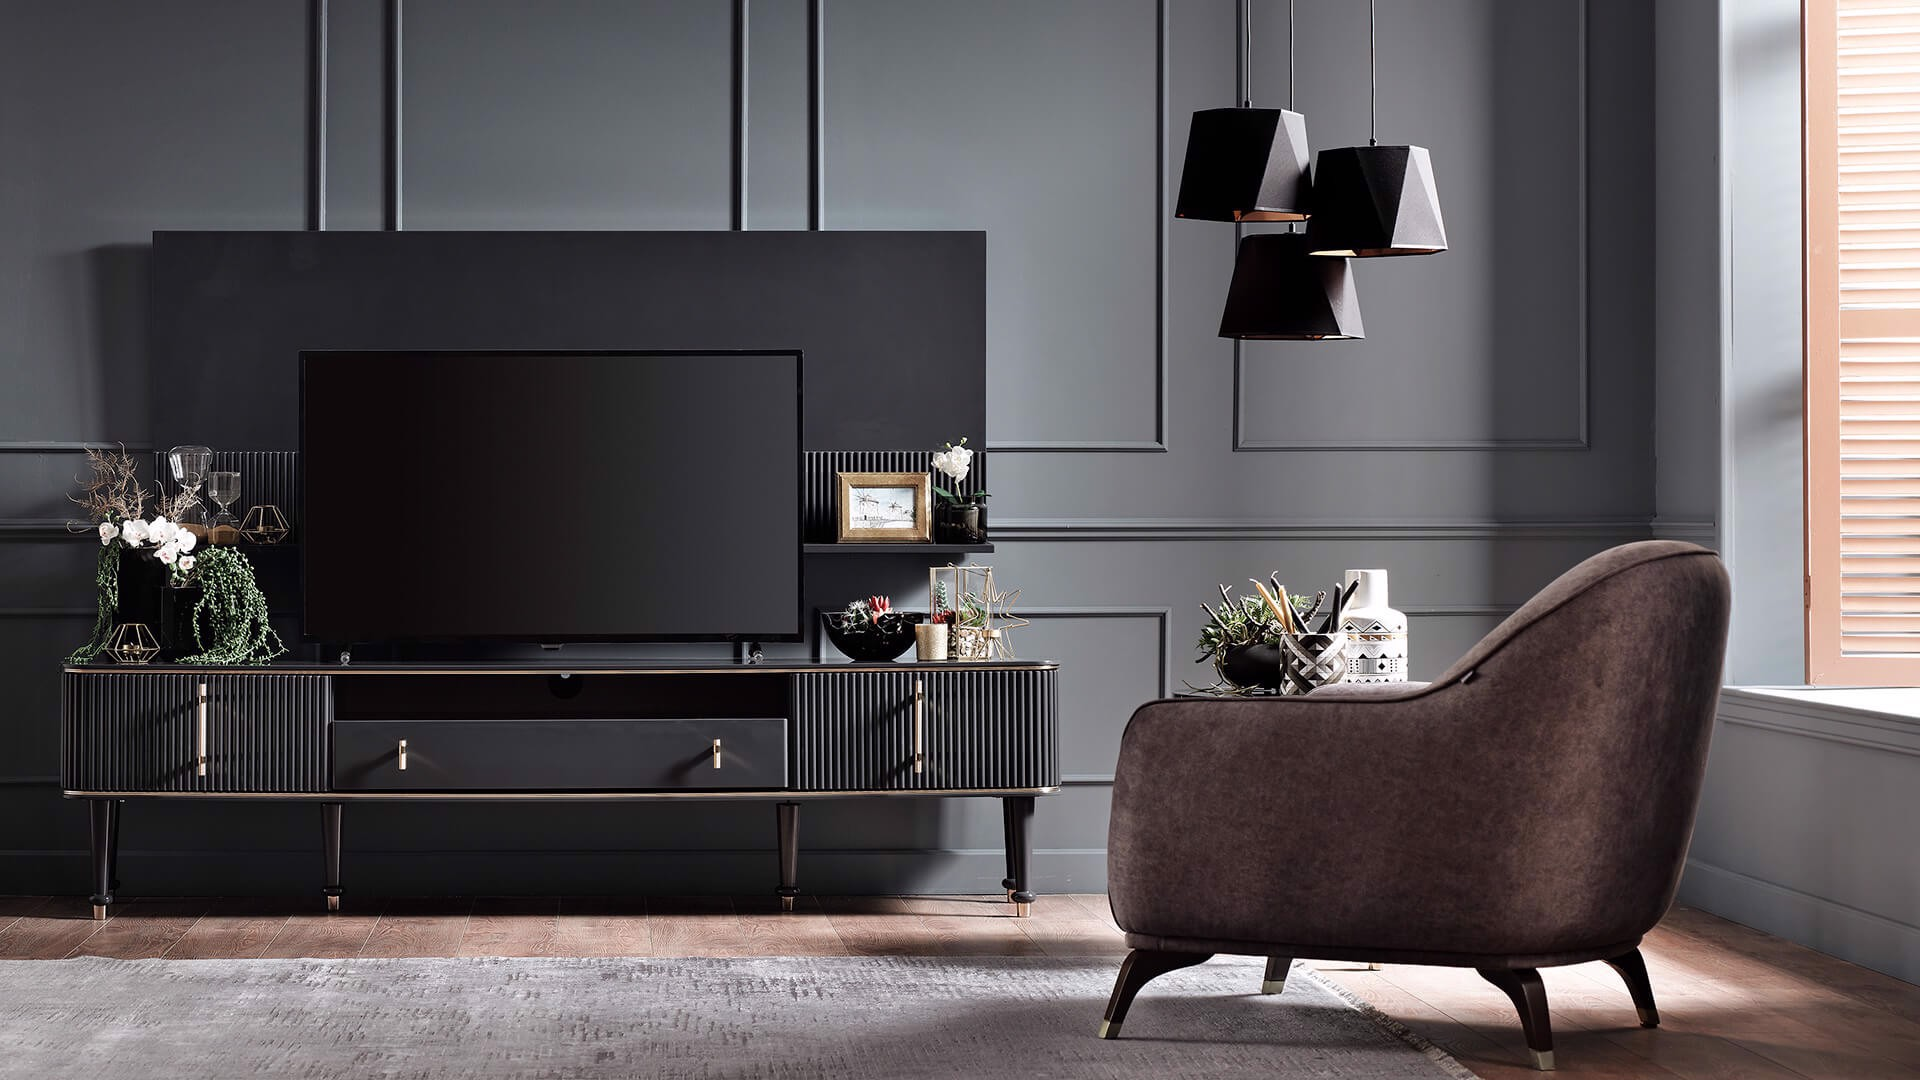 Media-stand +110 Unique Living Room Furniture Pieces That Amaze Everyone